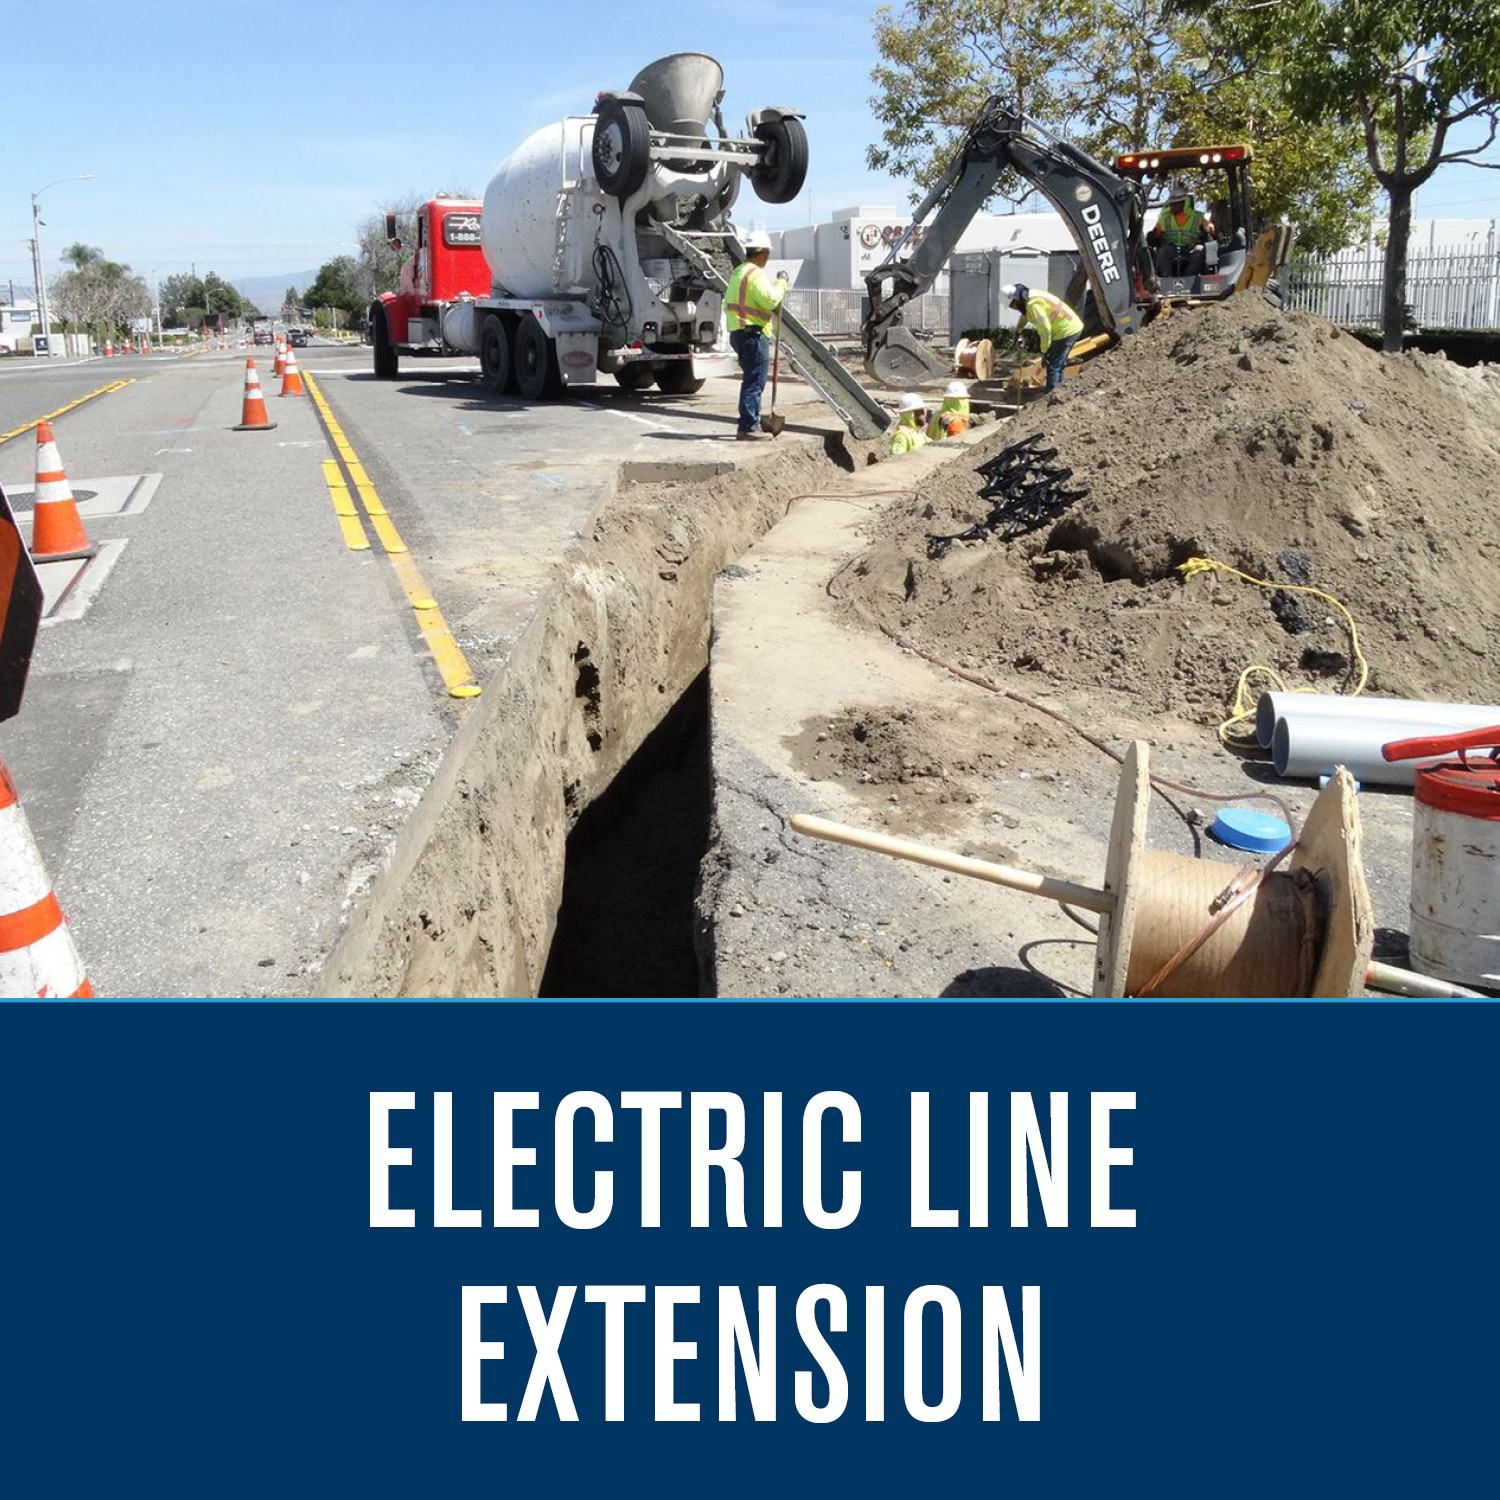 Electric Line Extension